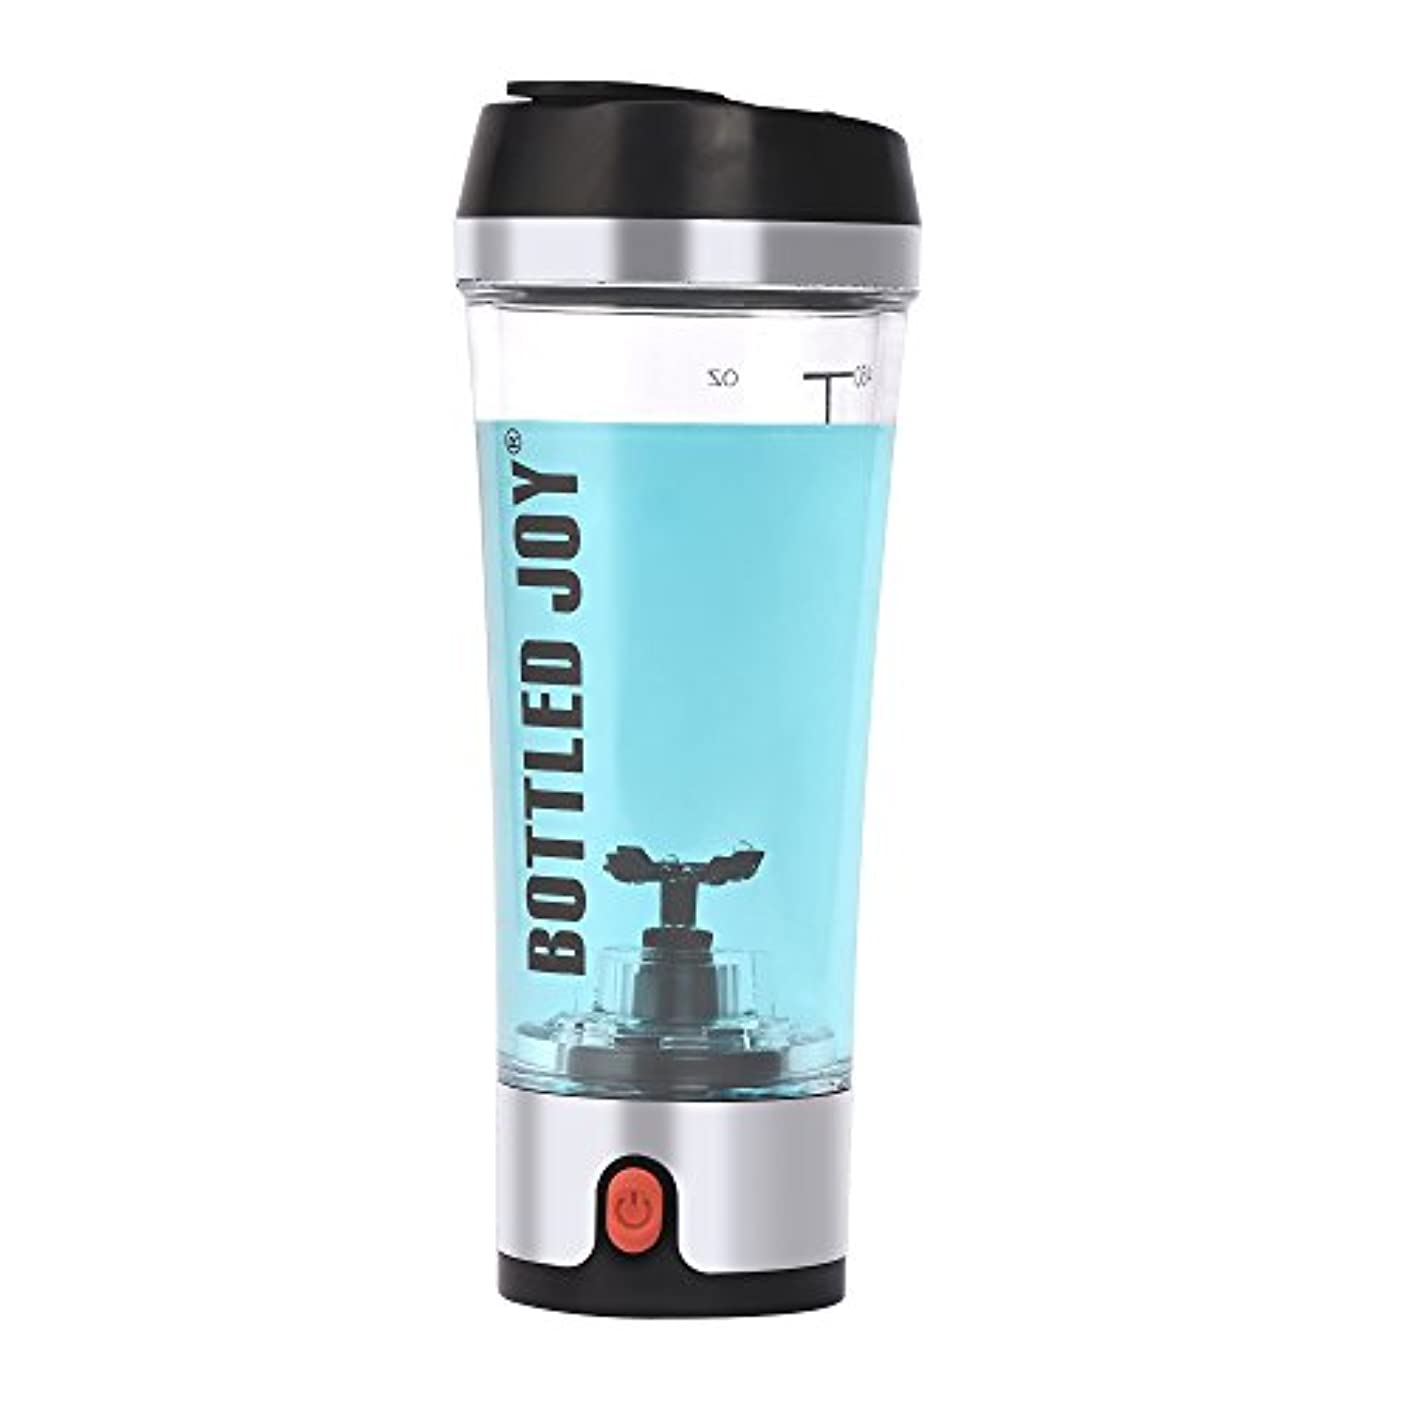 お母さんリール欠席Bottled Joy Electric Shaker Bottle、USB Rechargeable Protein Shaker、high-torque Stirring Blenderミキサーのスポーツマンと女性16oz...